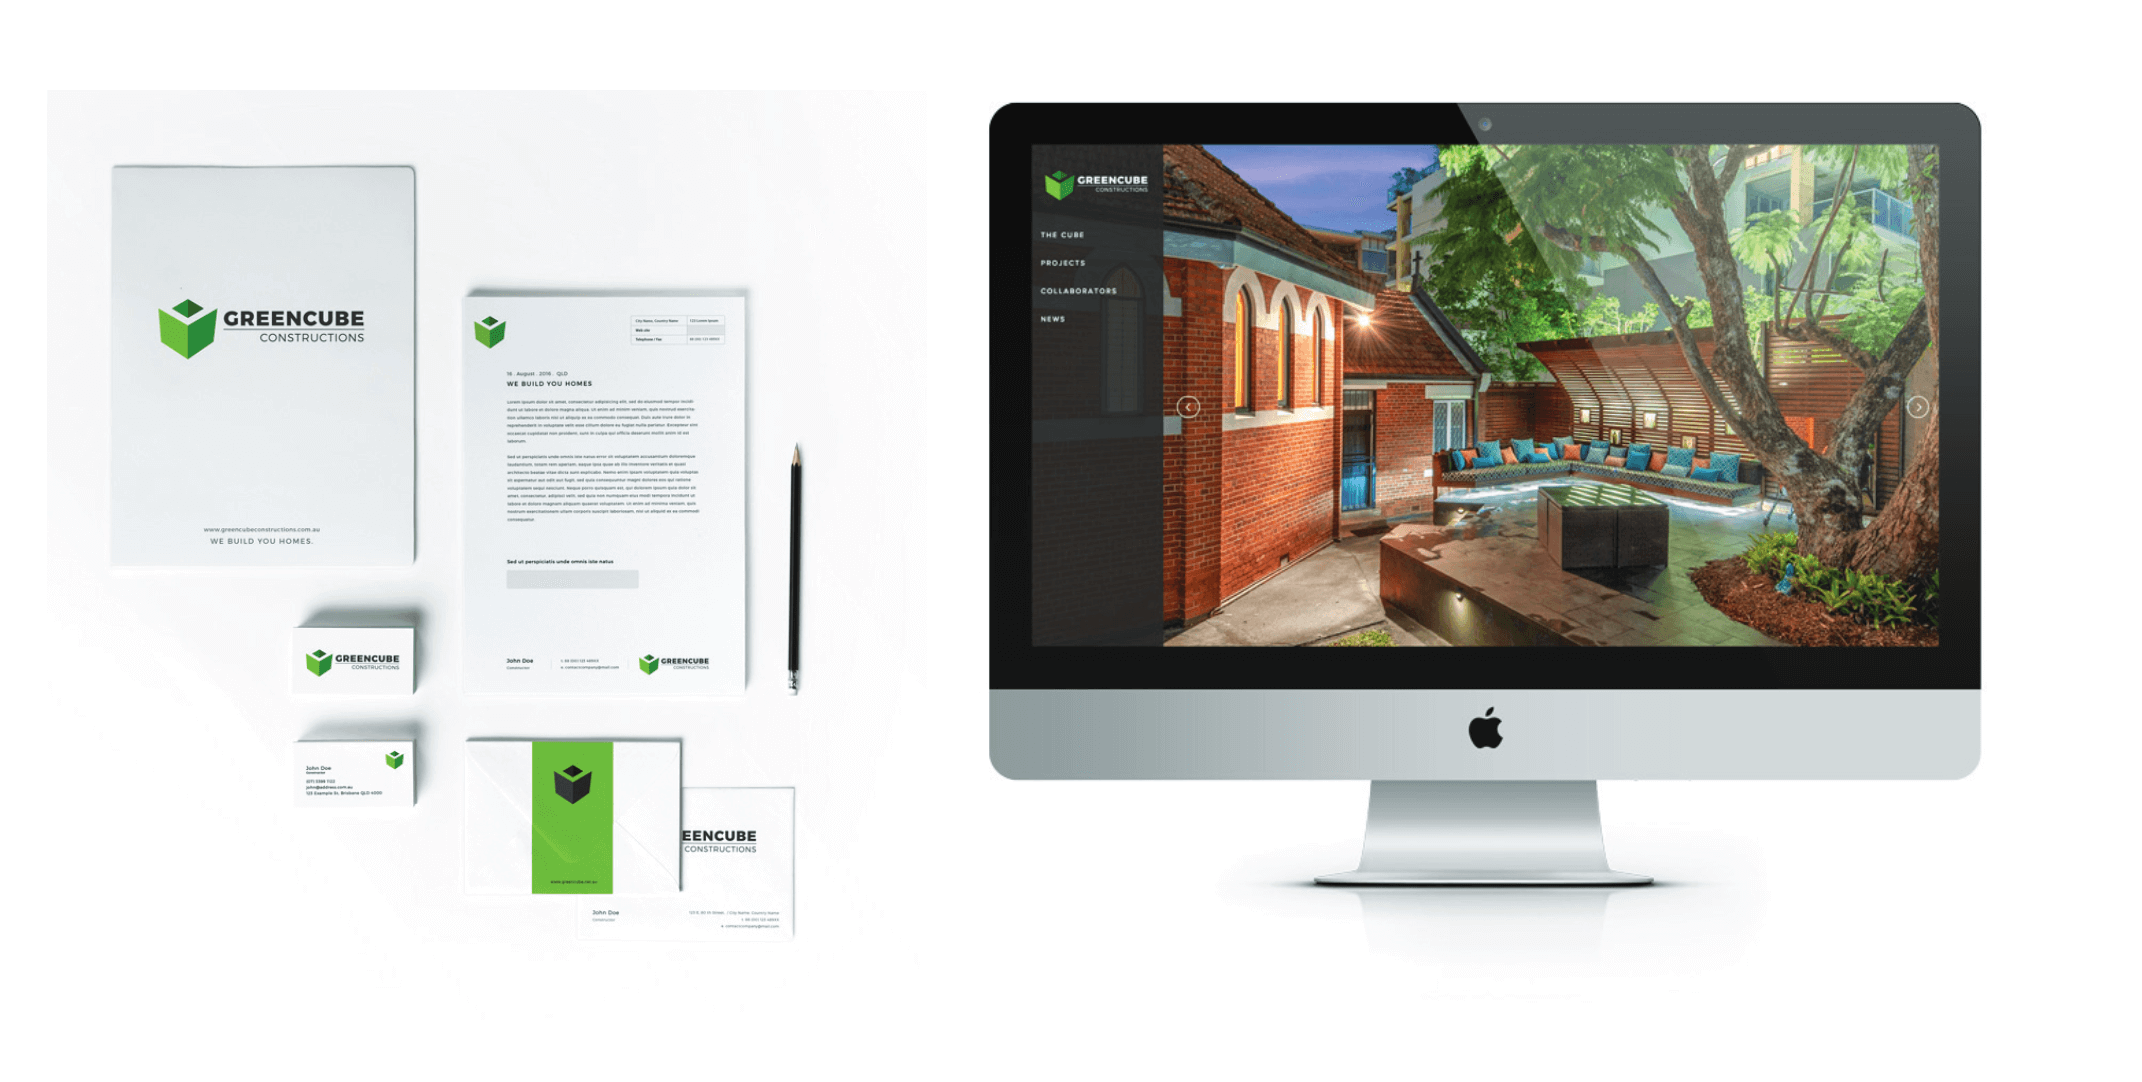 GreenCube Constructions Brand Guidelines Document Page 4